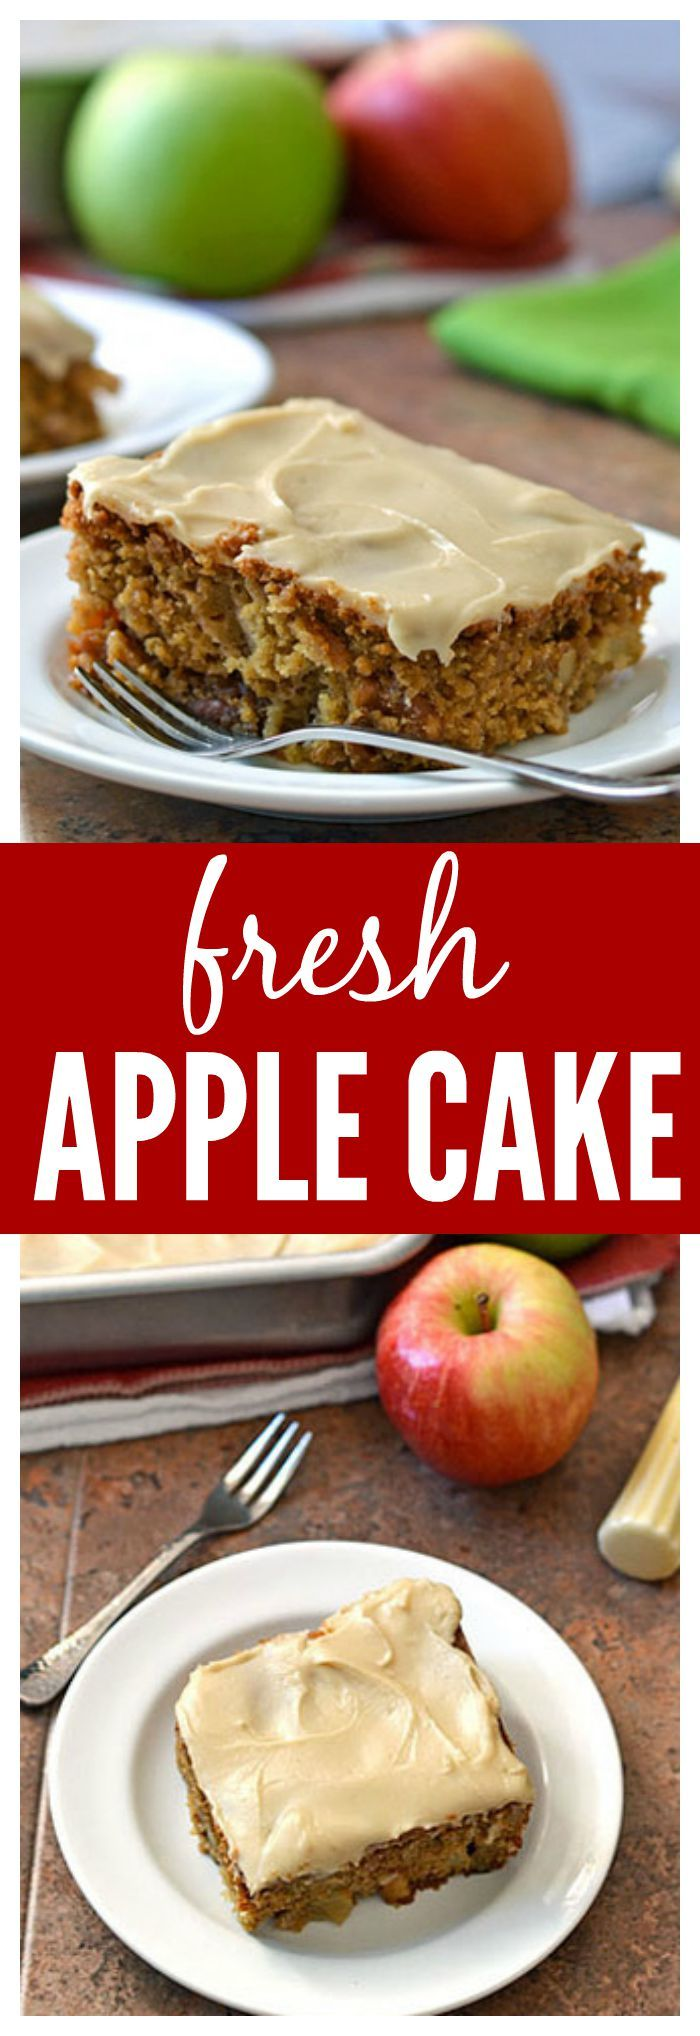 Fresh Apple Cake with Brown Sugar Frosting. A must bake for fall! Extra moist, whole wheat, and packed with warm cinnamon spices.